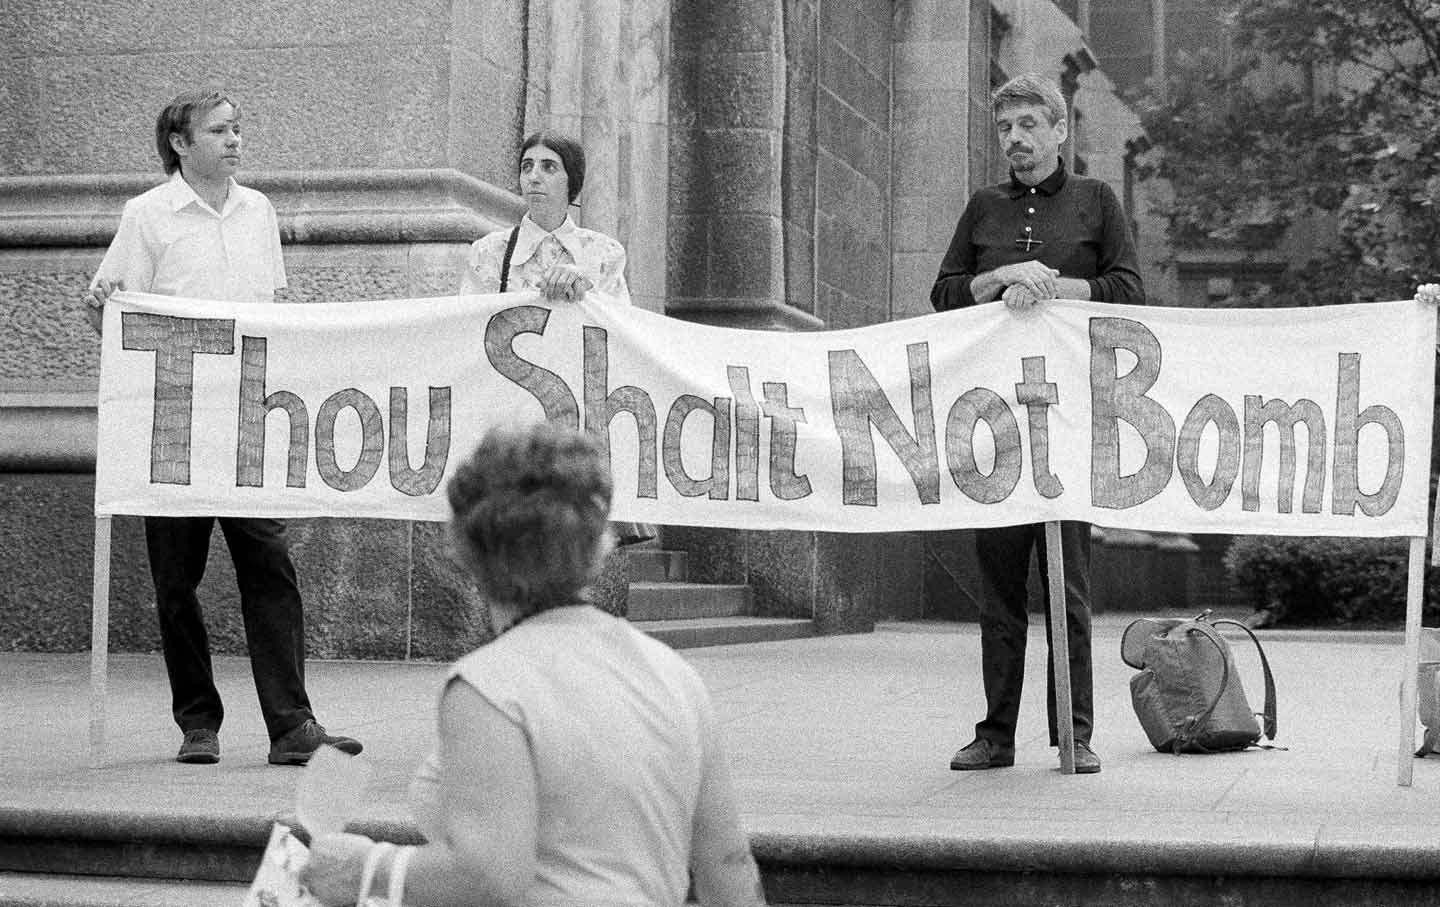 Daniel Berrigan protesting bombing